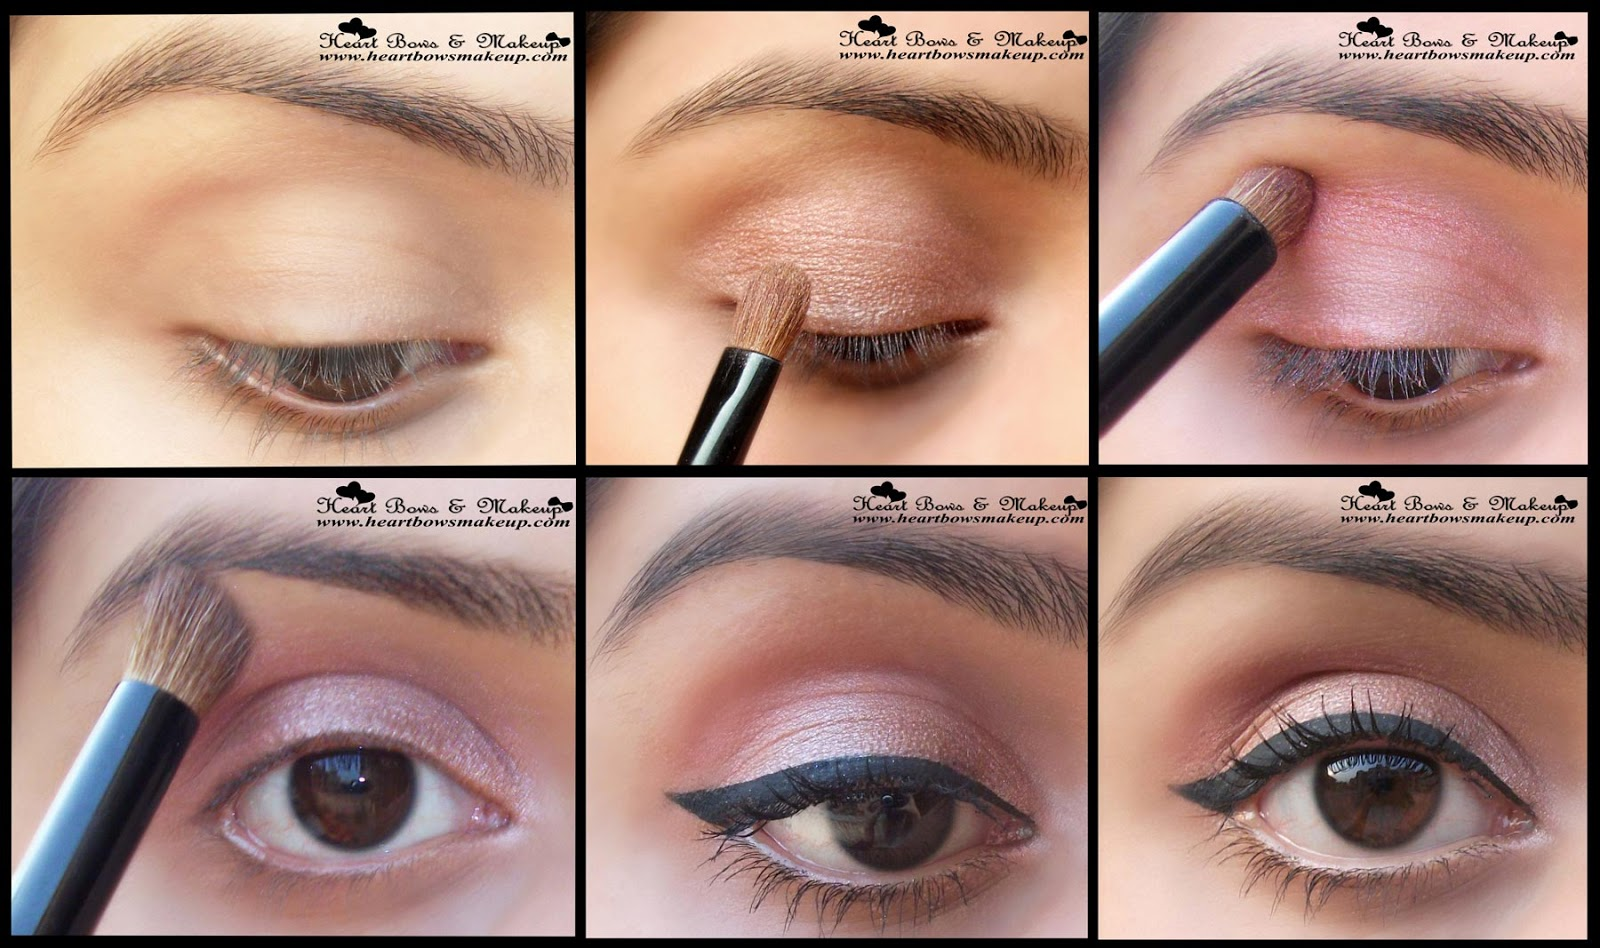 Step By Step Tutorial Everyday/ Office/ Neutral Eyemakeup In 5 Easy Steps - Heart Bows U0026 Makeup